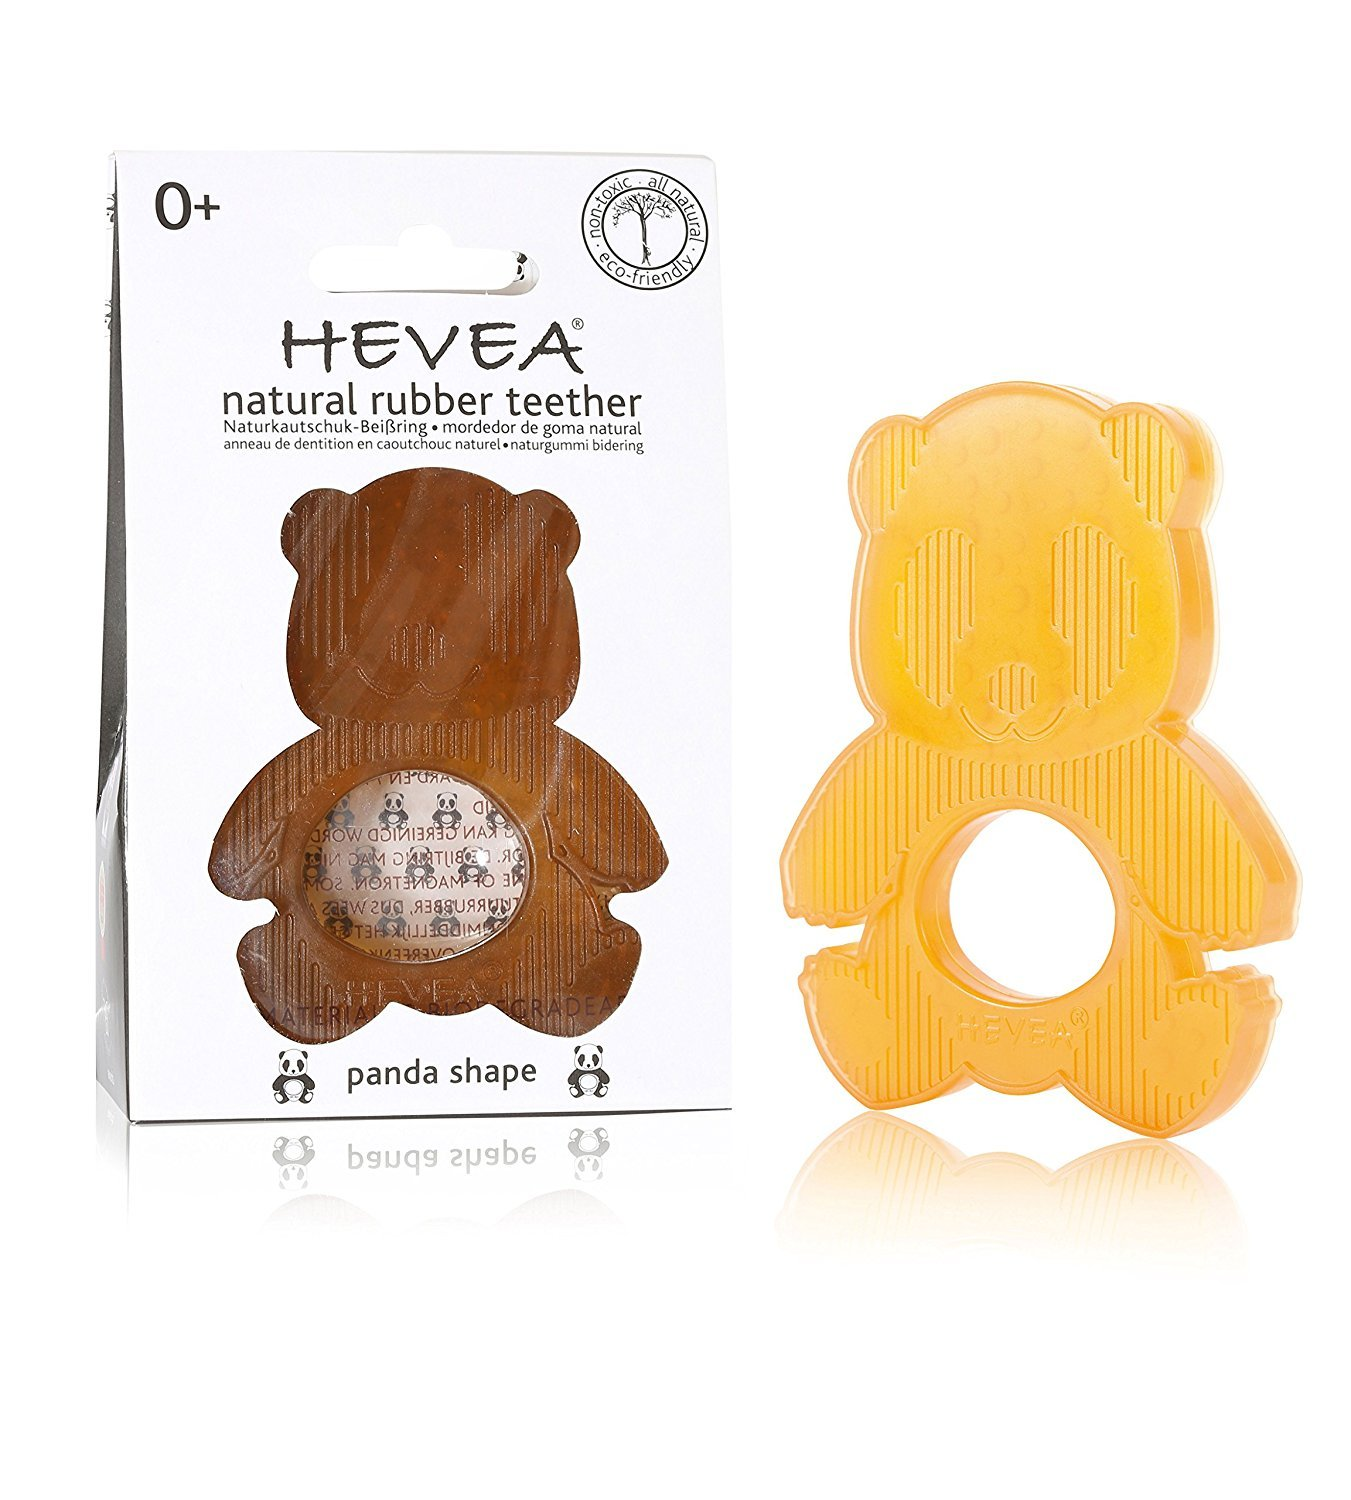 Hevea Anneau de dentition Panda Orange